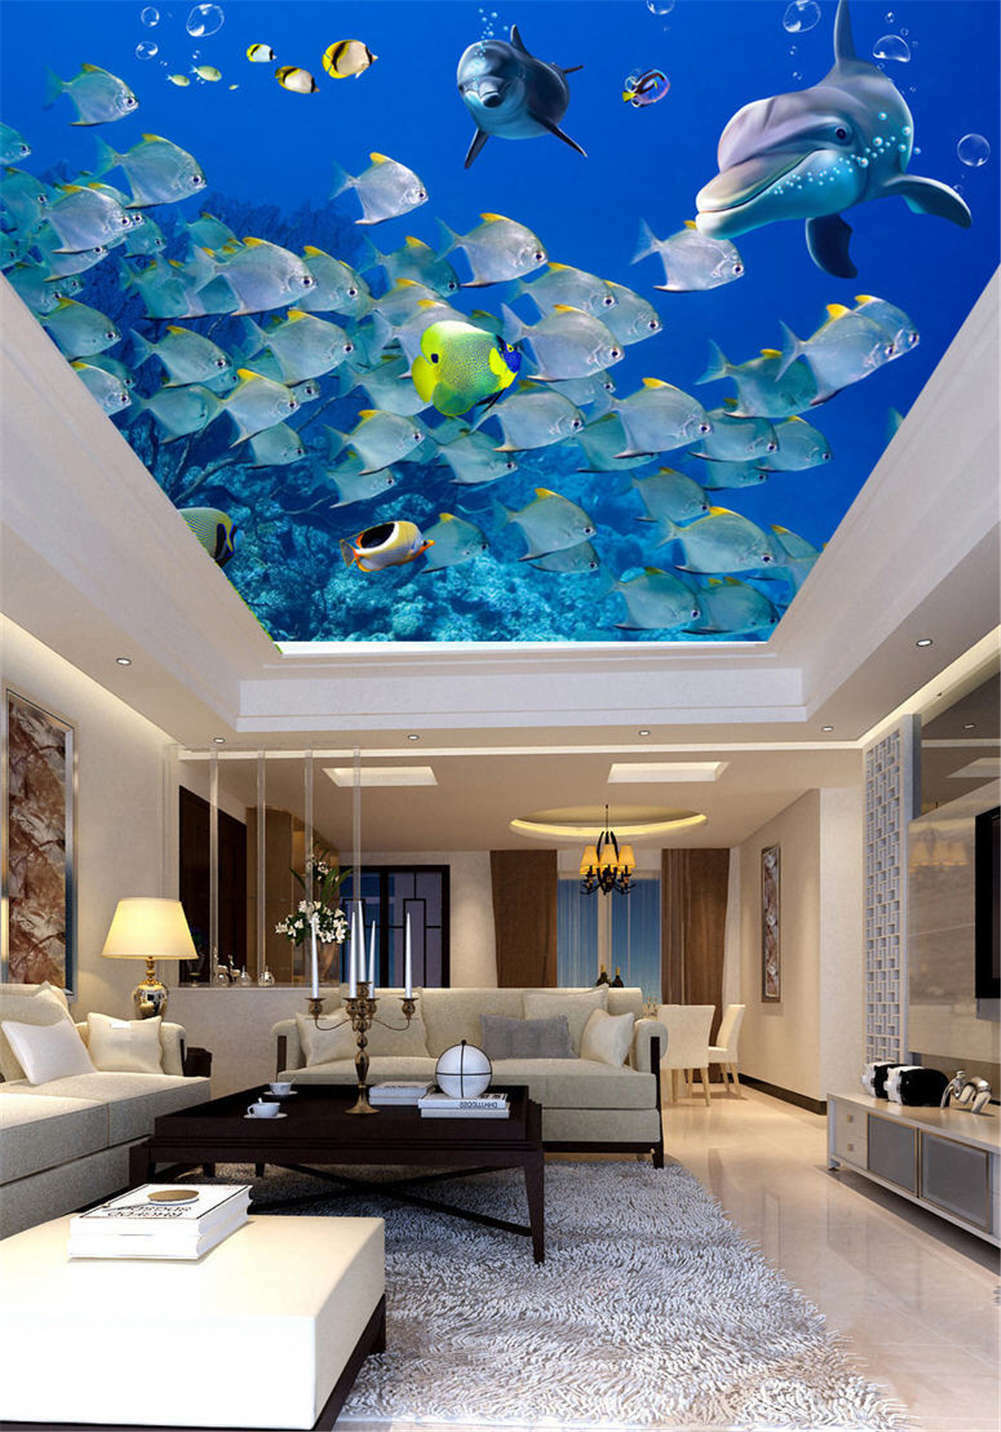 Smart Agminate Fish 3D Ceiling Mural Full Wall Photo Wallpaper Print Home Decor